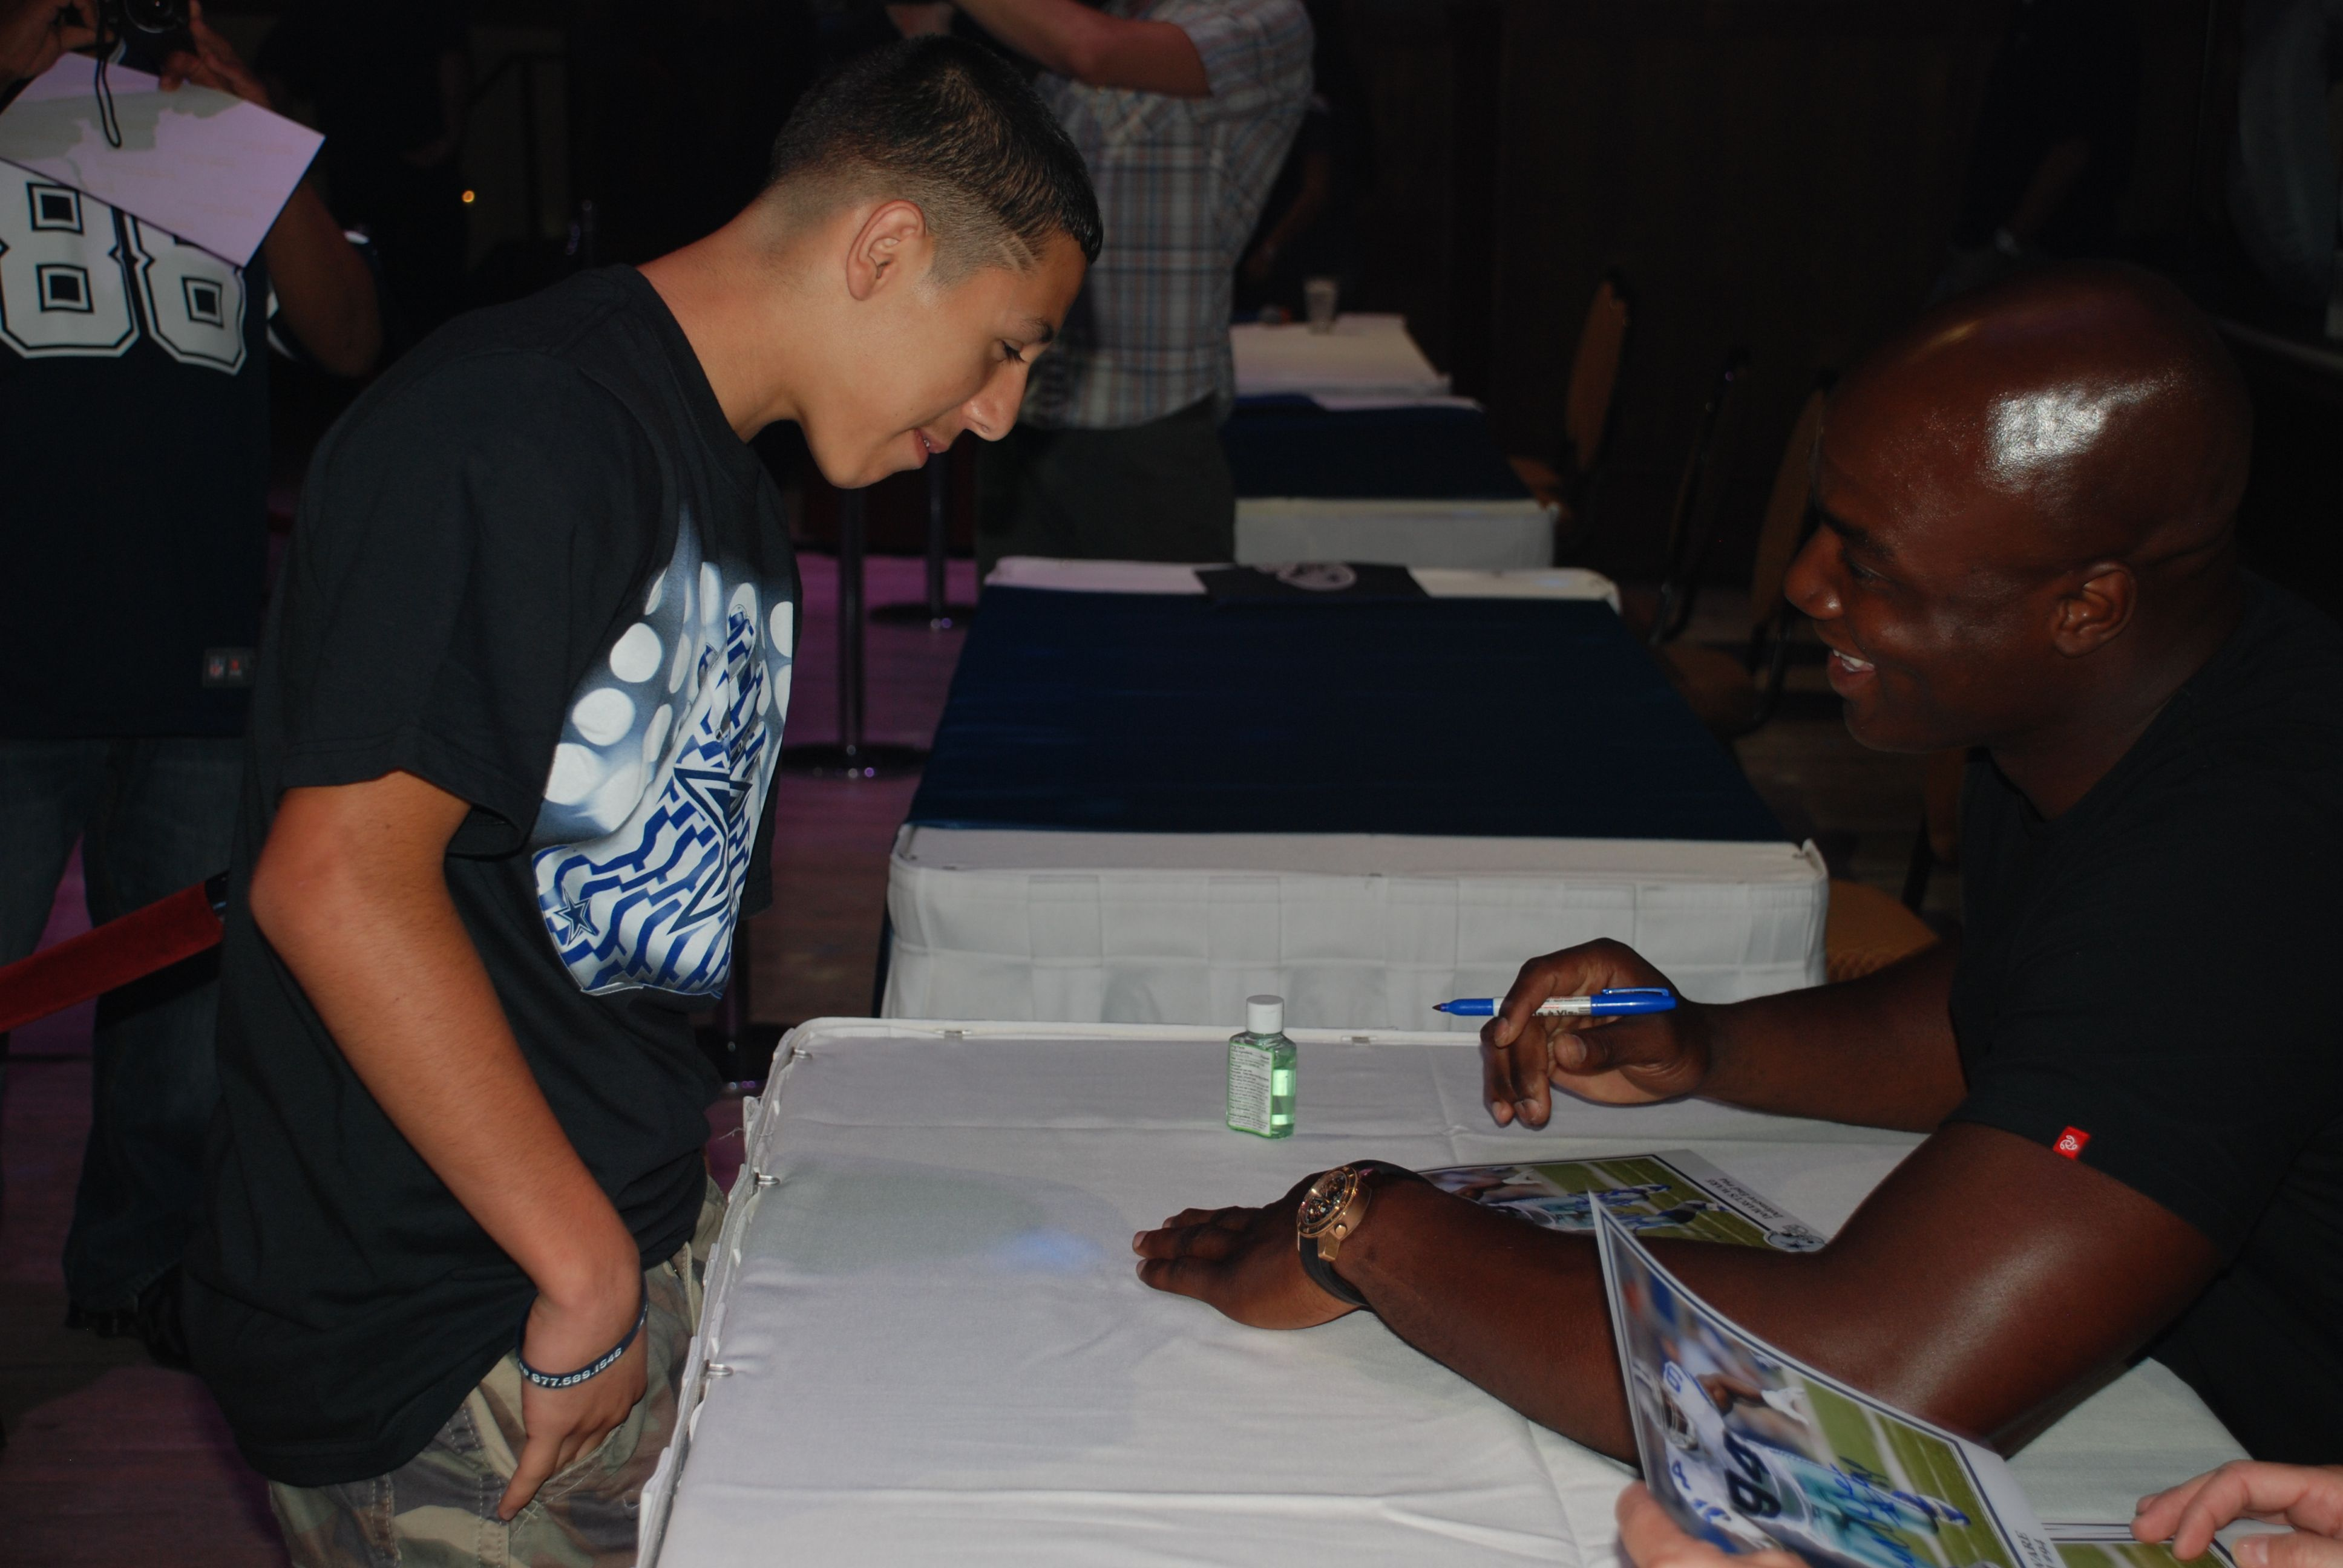 Meet stars like demarcus ware dallas cowboys player meet greet the star sports tours player meet greet is your chance to meet current players of the dallas cowboys m4hsunfo Image collections